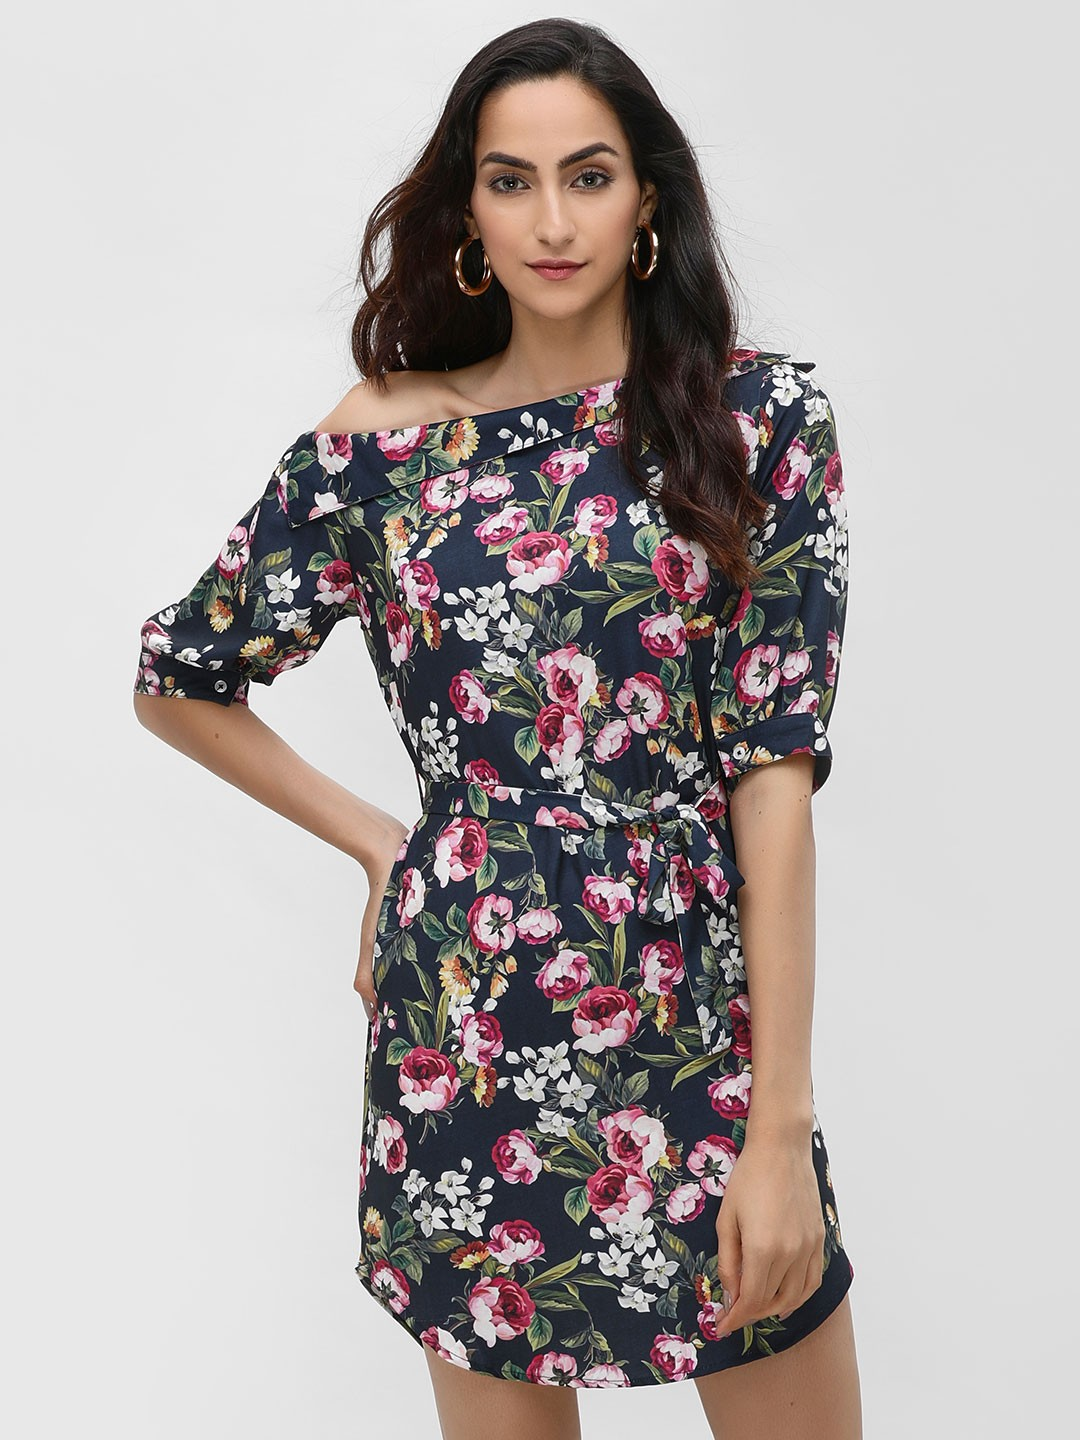 Ri-Dress Multi Floral Printed Shift Dress 1